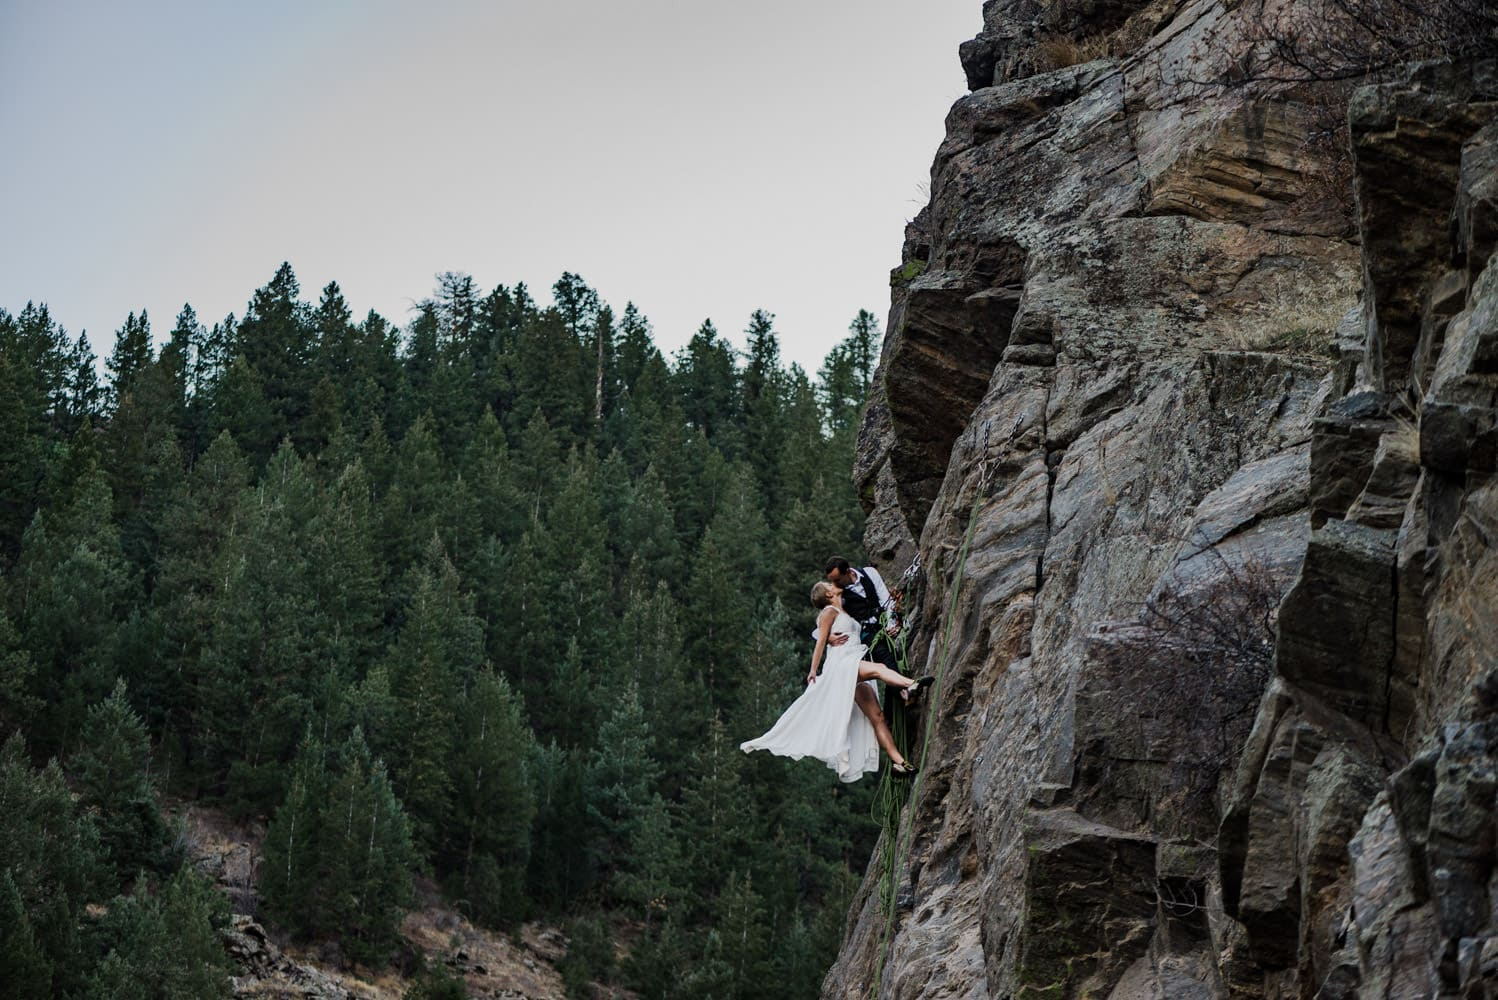 wedding couple rock climbing in wedding clothes thrilled because they discovered one of the best places to elope